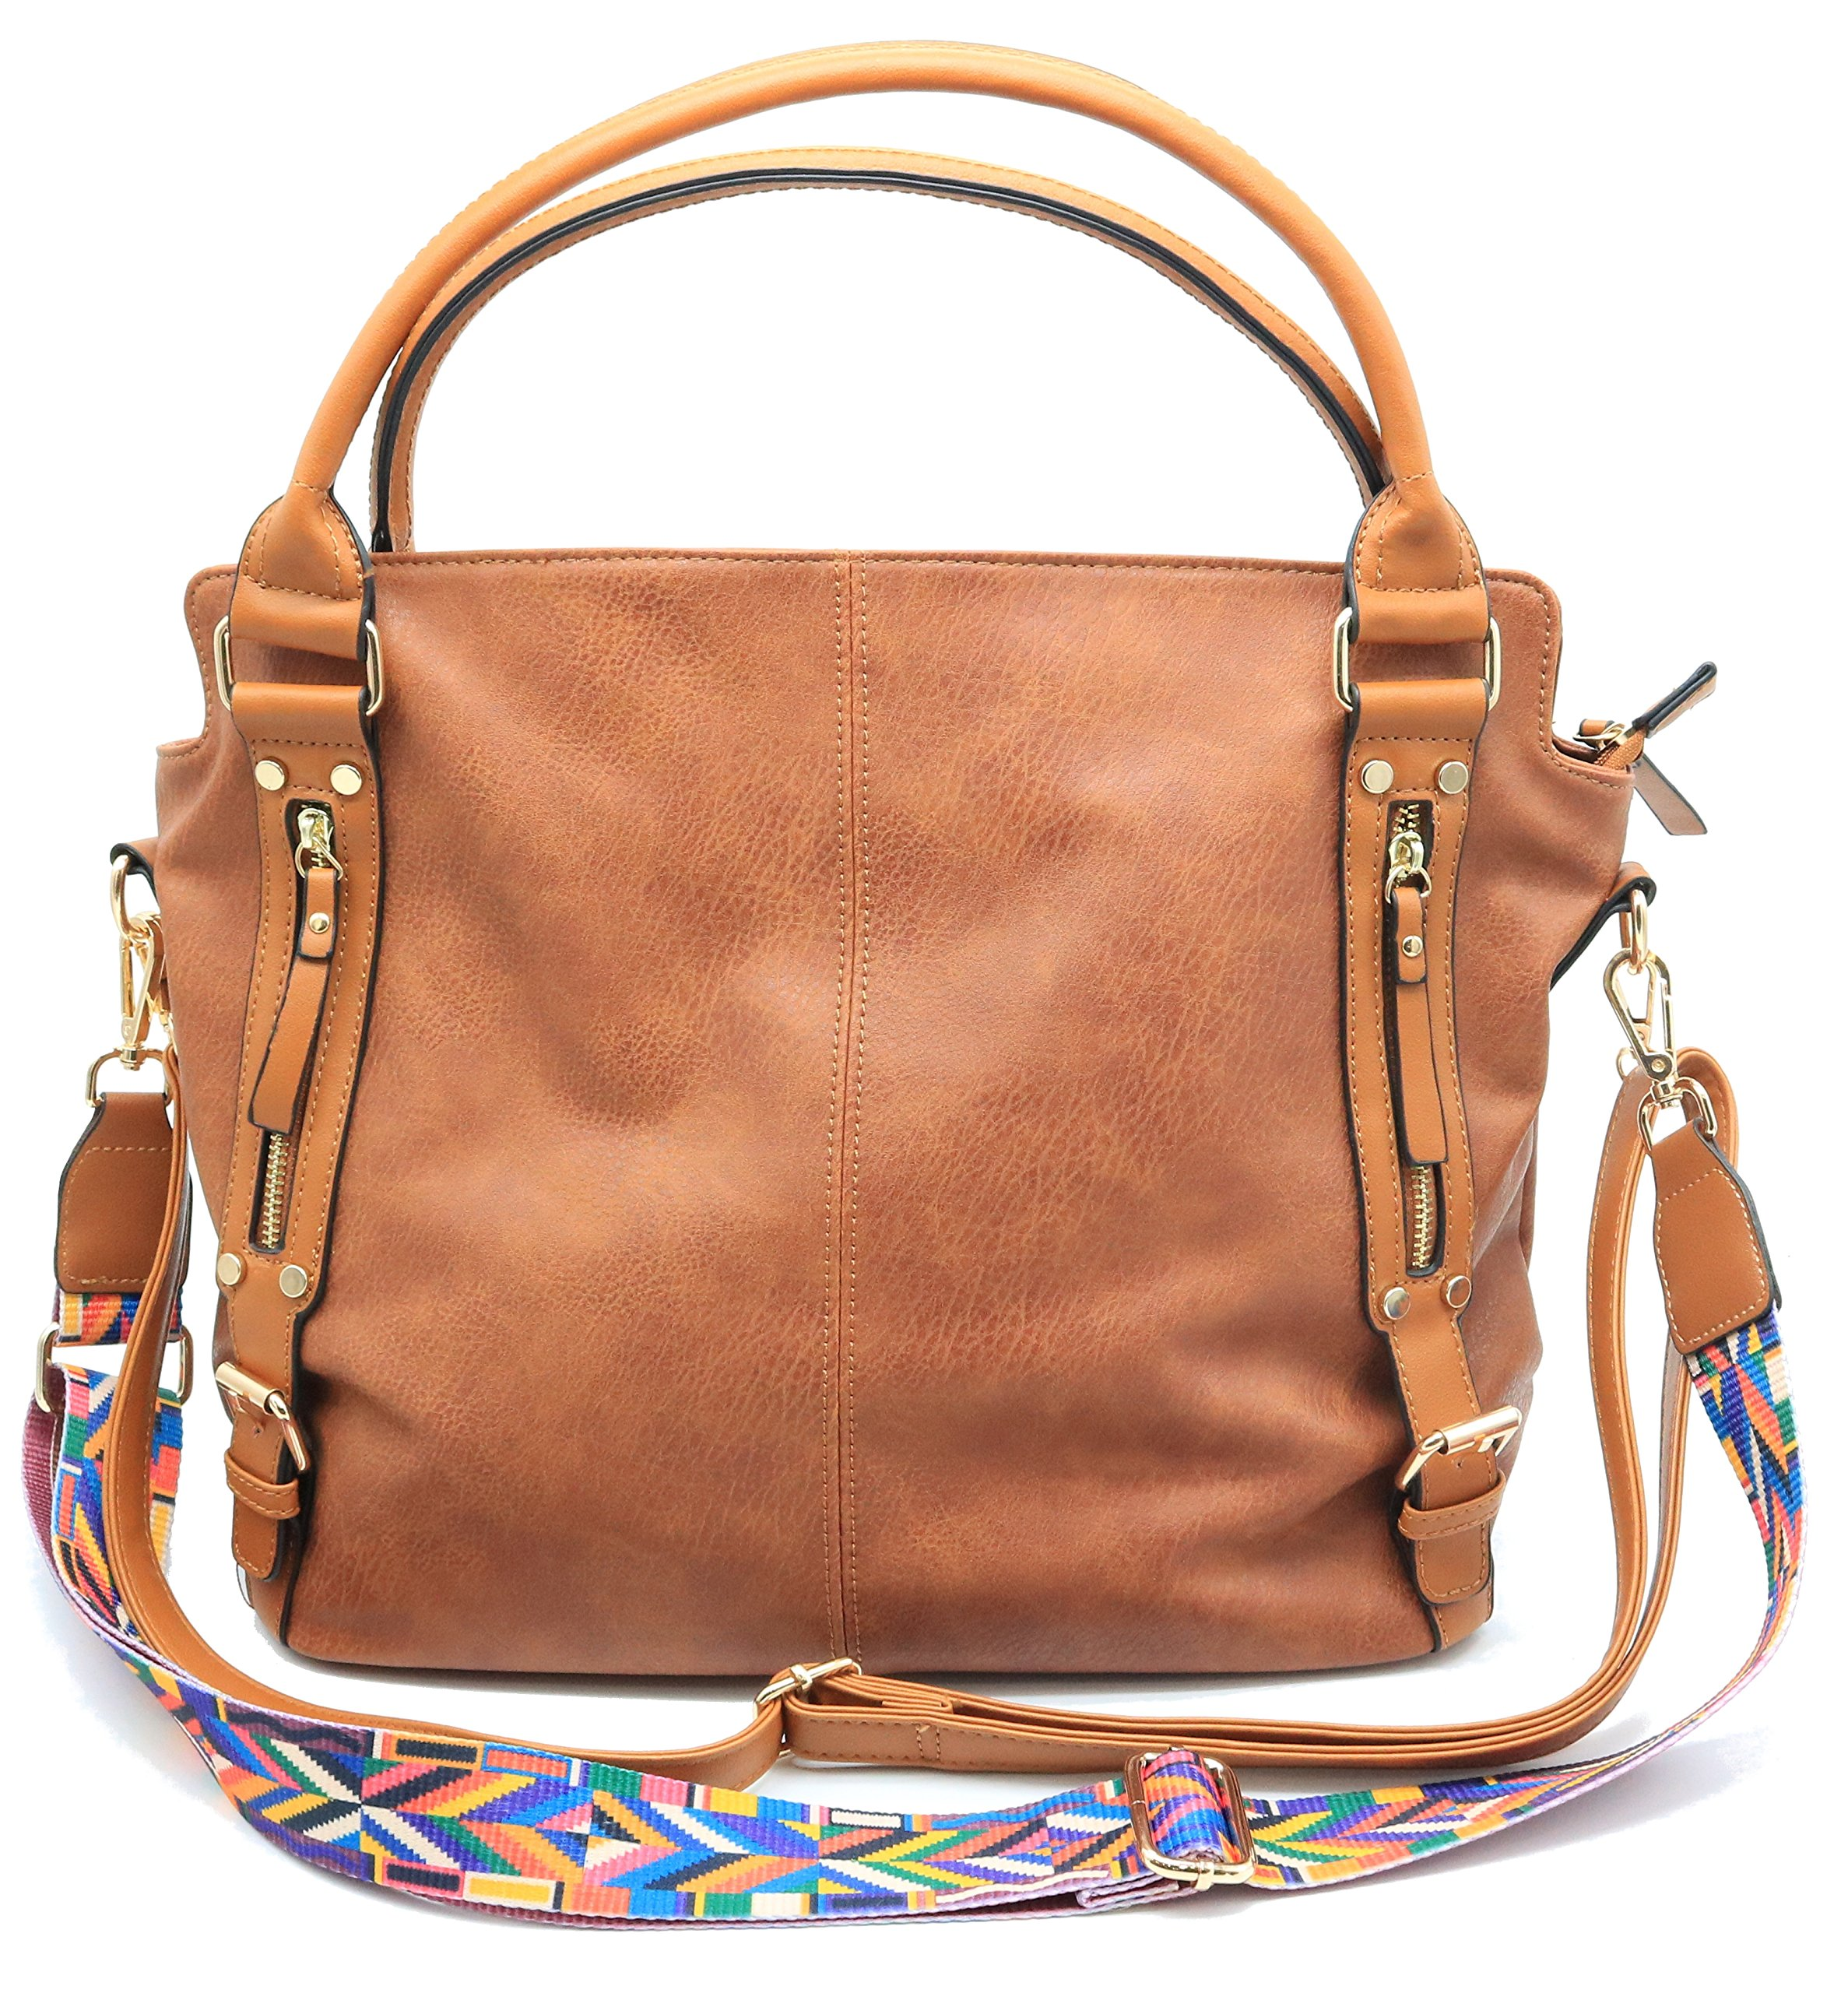 Codyna Womens Large Hobo Handbags [ PU Leather ] with Guitar Style Strap for Shoulder Bag Tote (Brown)